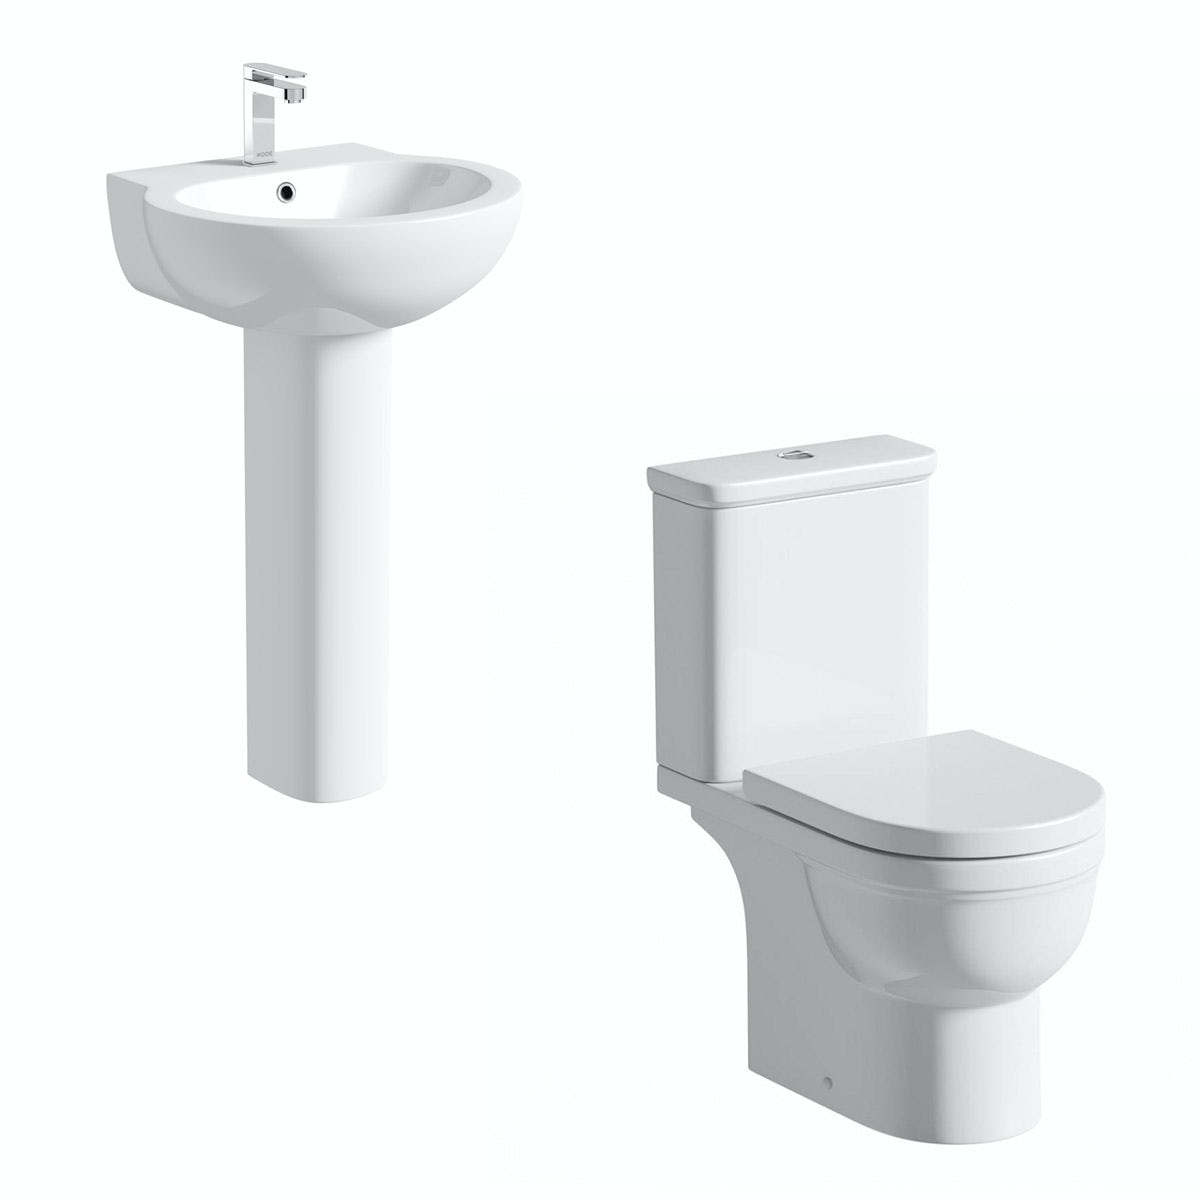 Orchard Elsdon cloakroom suite with contemporary full pedestal basin 540mm